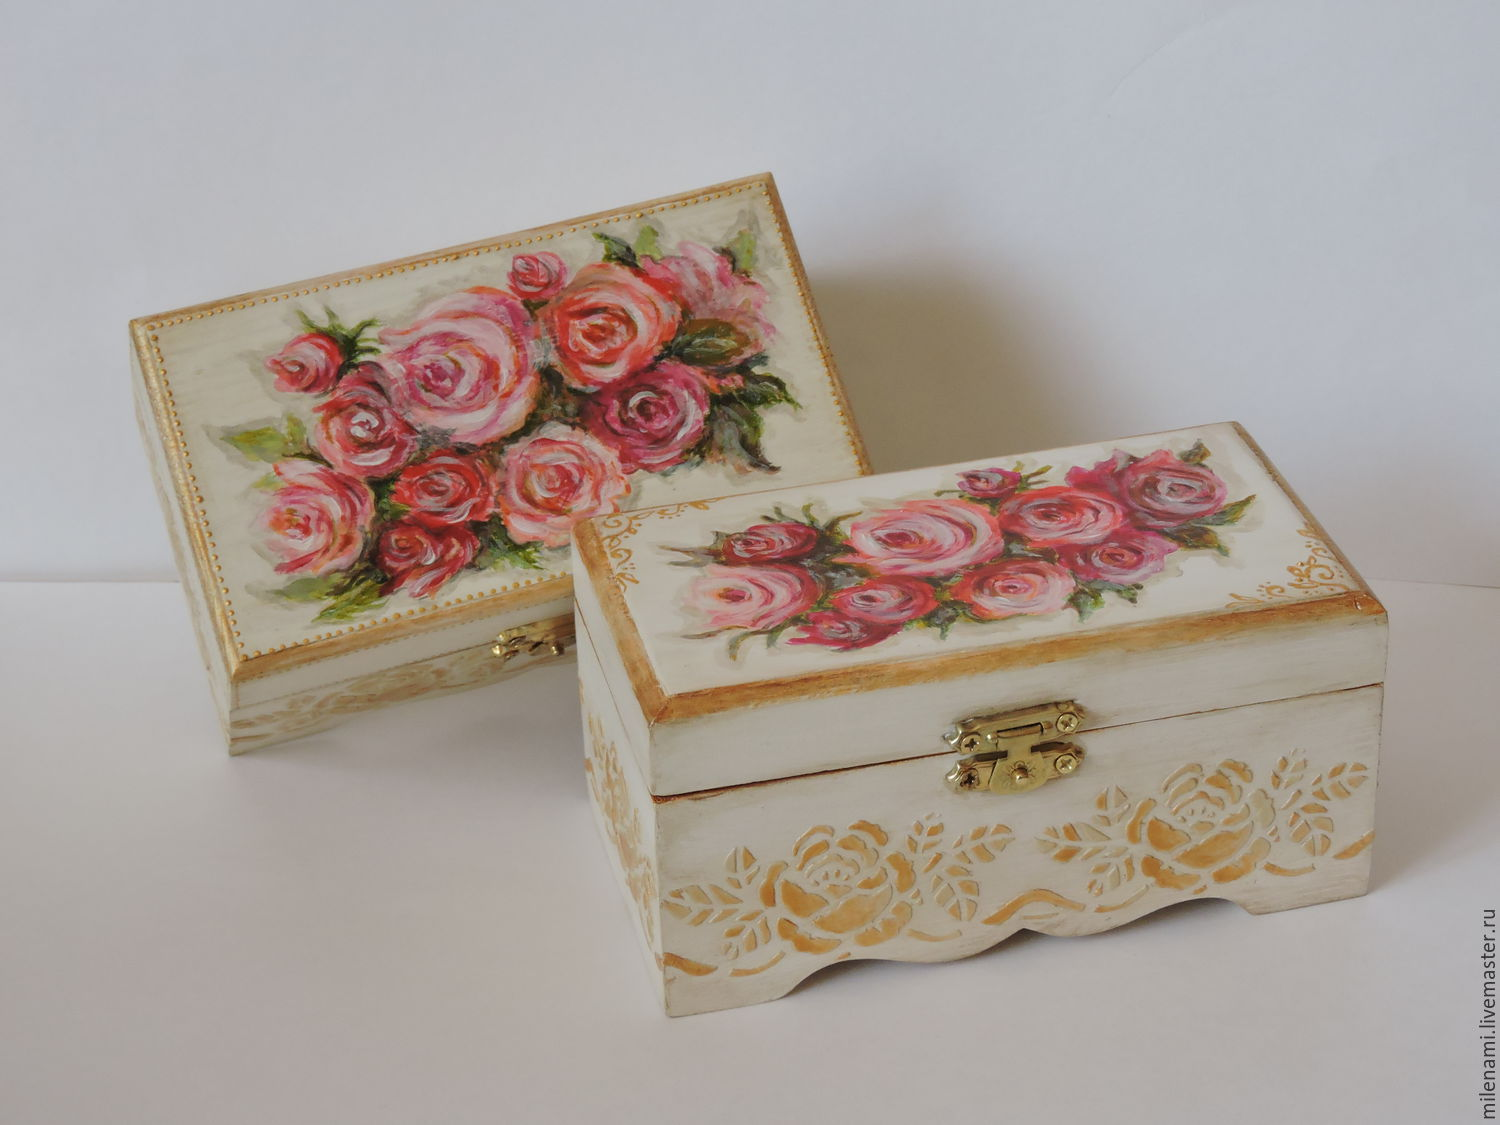 pink dreams jewelry box shabby chic hand painted shop online on livemaster with shipping. Black Bedroom Furniture Sets. Home Design Ideas